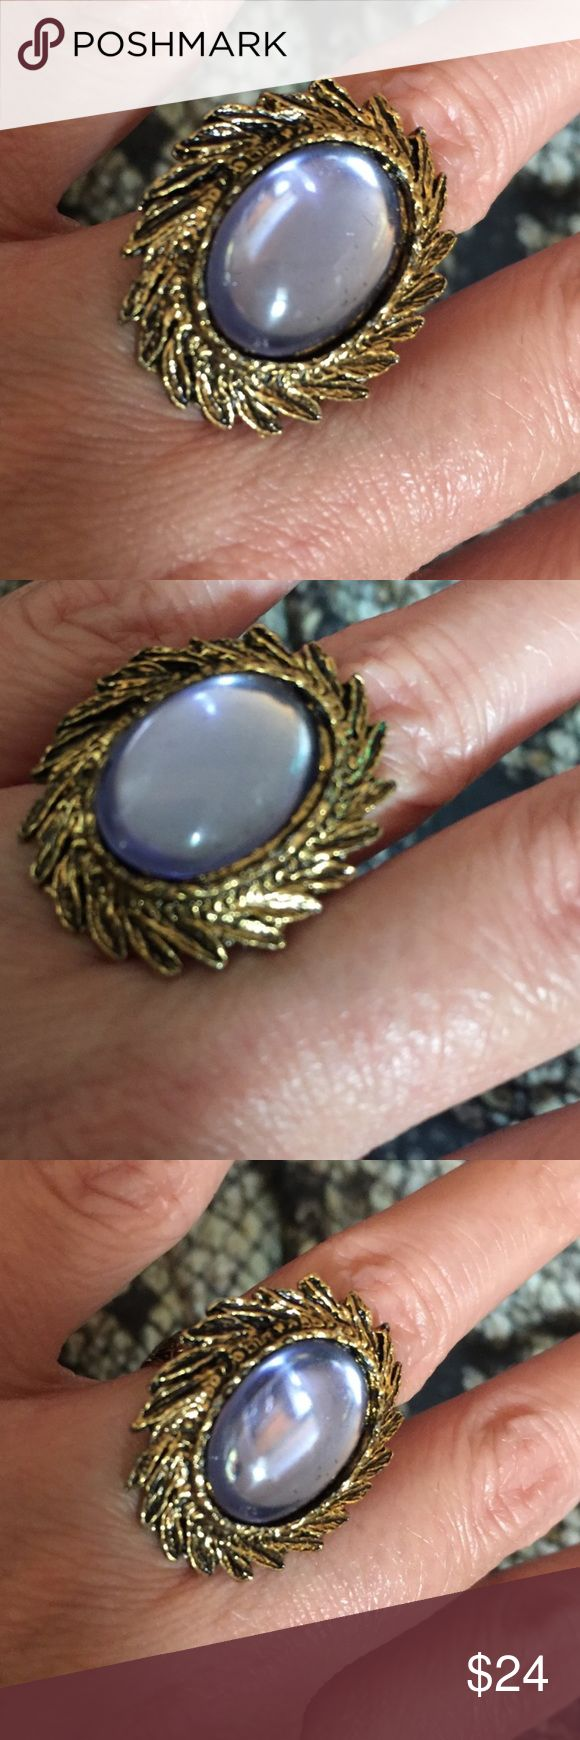 Stevie Nicks Vintage Blue Moon Gold Ring Gypsy 🌛✨ Vintage blue cameo gold colored ring with fan detail at base. Ring has a blue glass cameo at center. The gold band has a Floral pattern. Very bohemian, and perfect for a Gypsy Goddess. Adjustable band to fit any size. Vintage Jewelry Rings